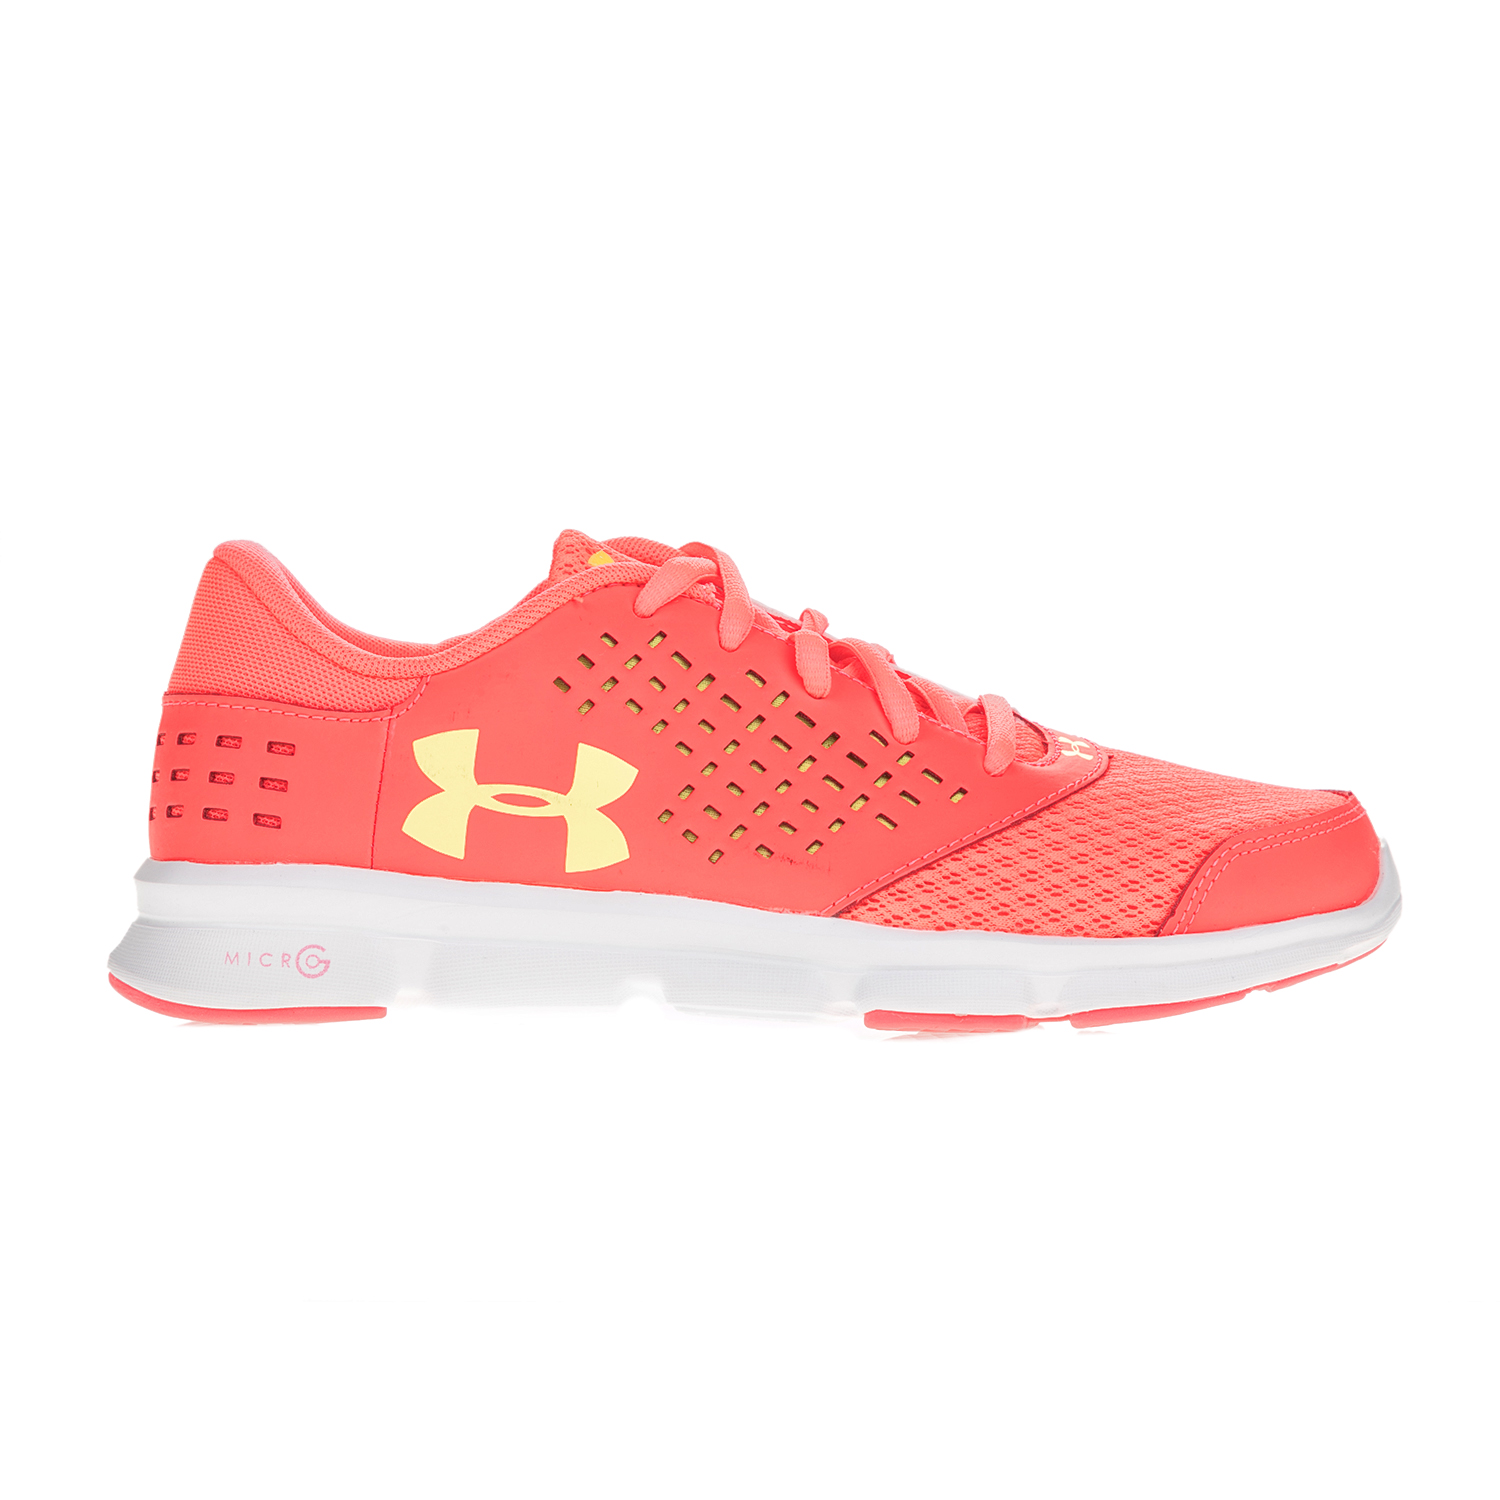 UNDER ARMOUR – Κοριτσίστικα αθλητικά παπούτσια UNDER ARMOUR GGS Micro G Rave RN πορτοκαλί